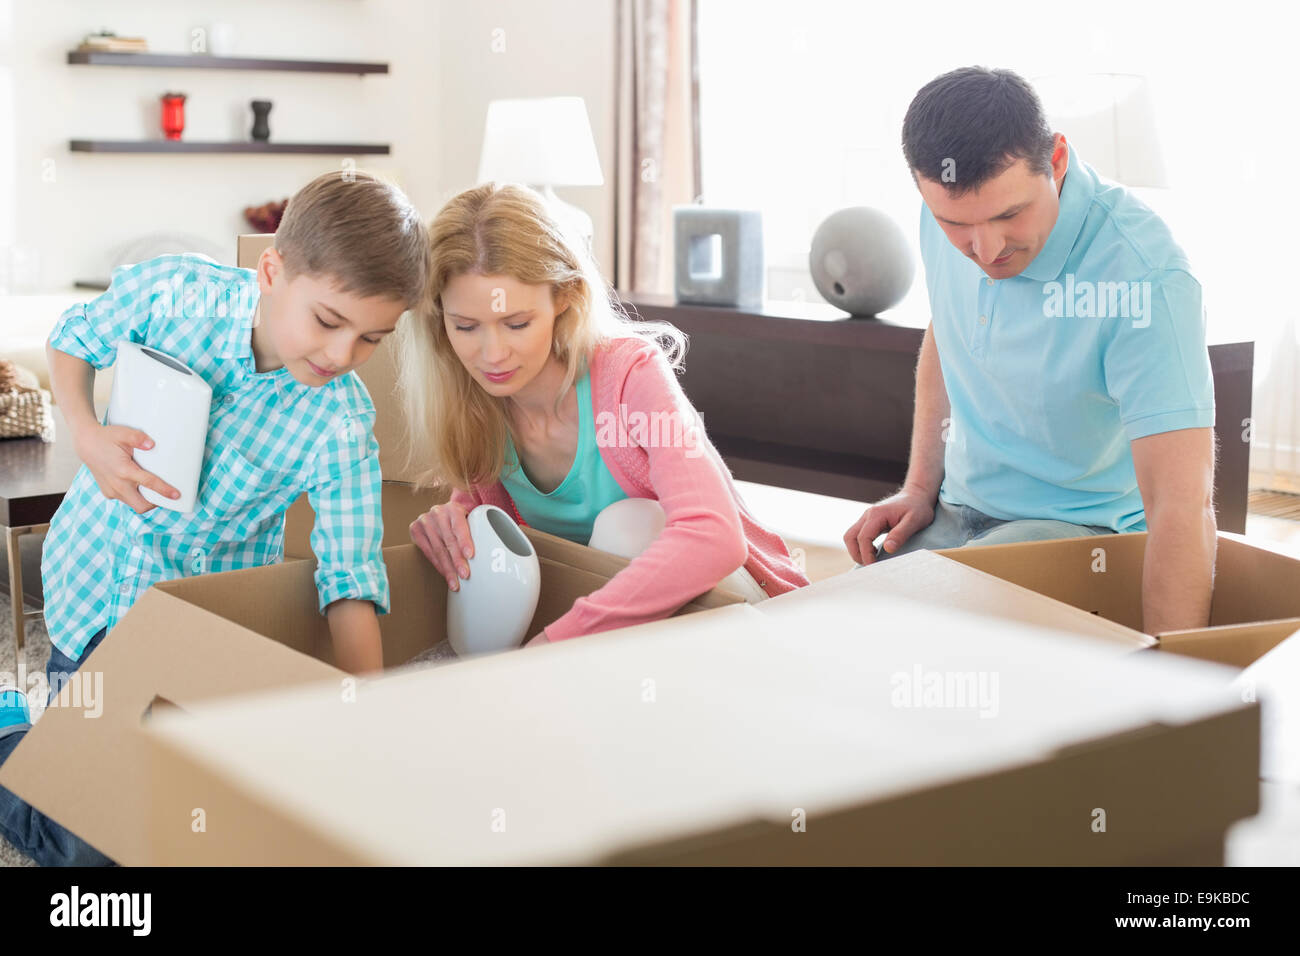 Family unpacking cardboard boxes in new house - Stock Image